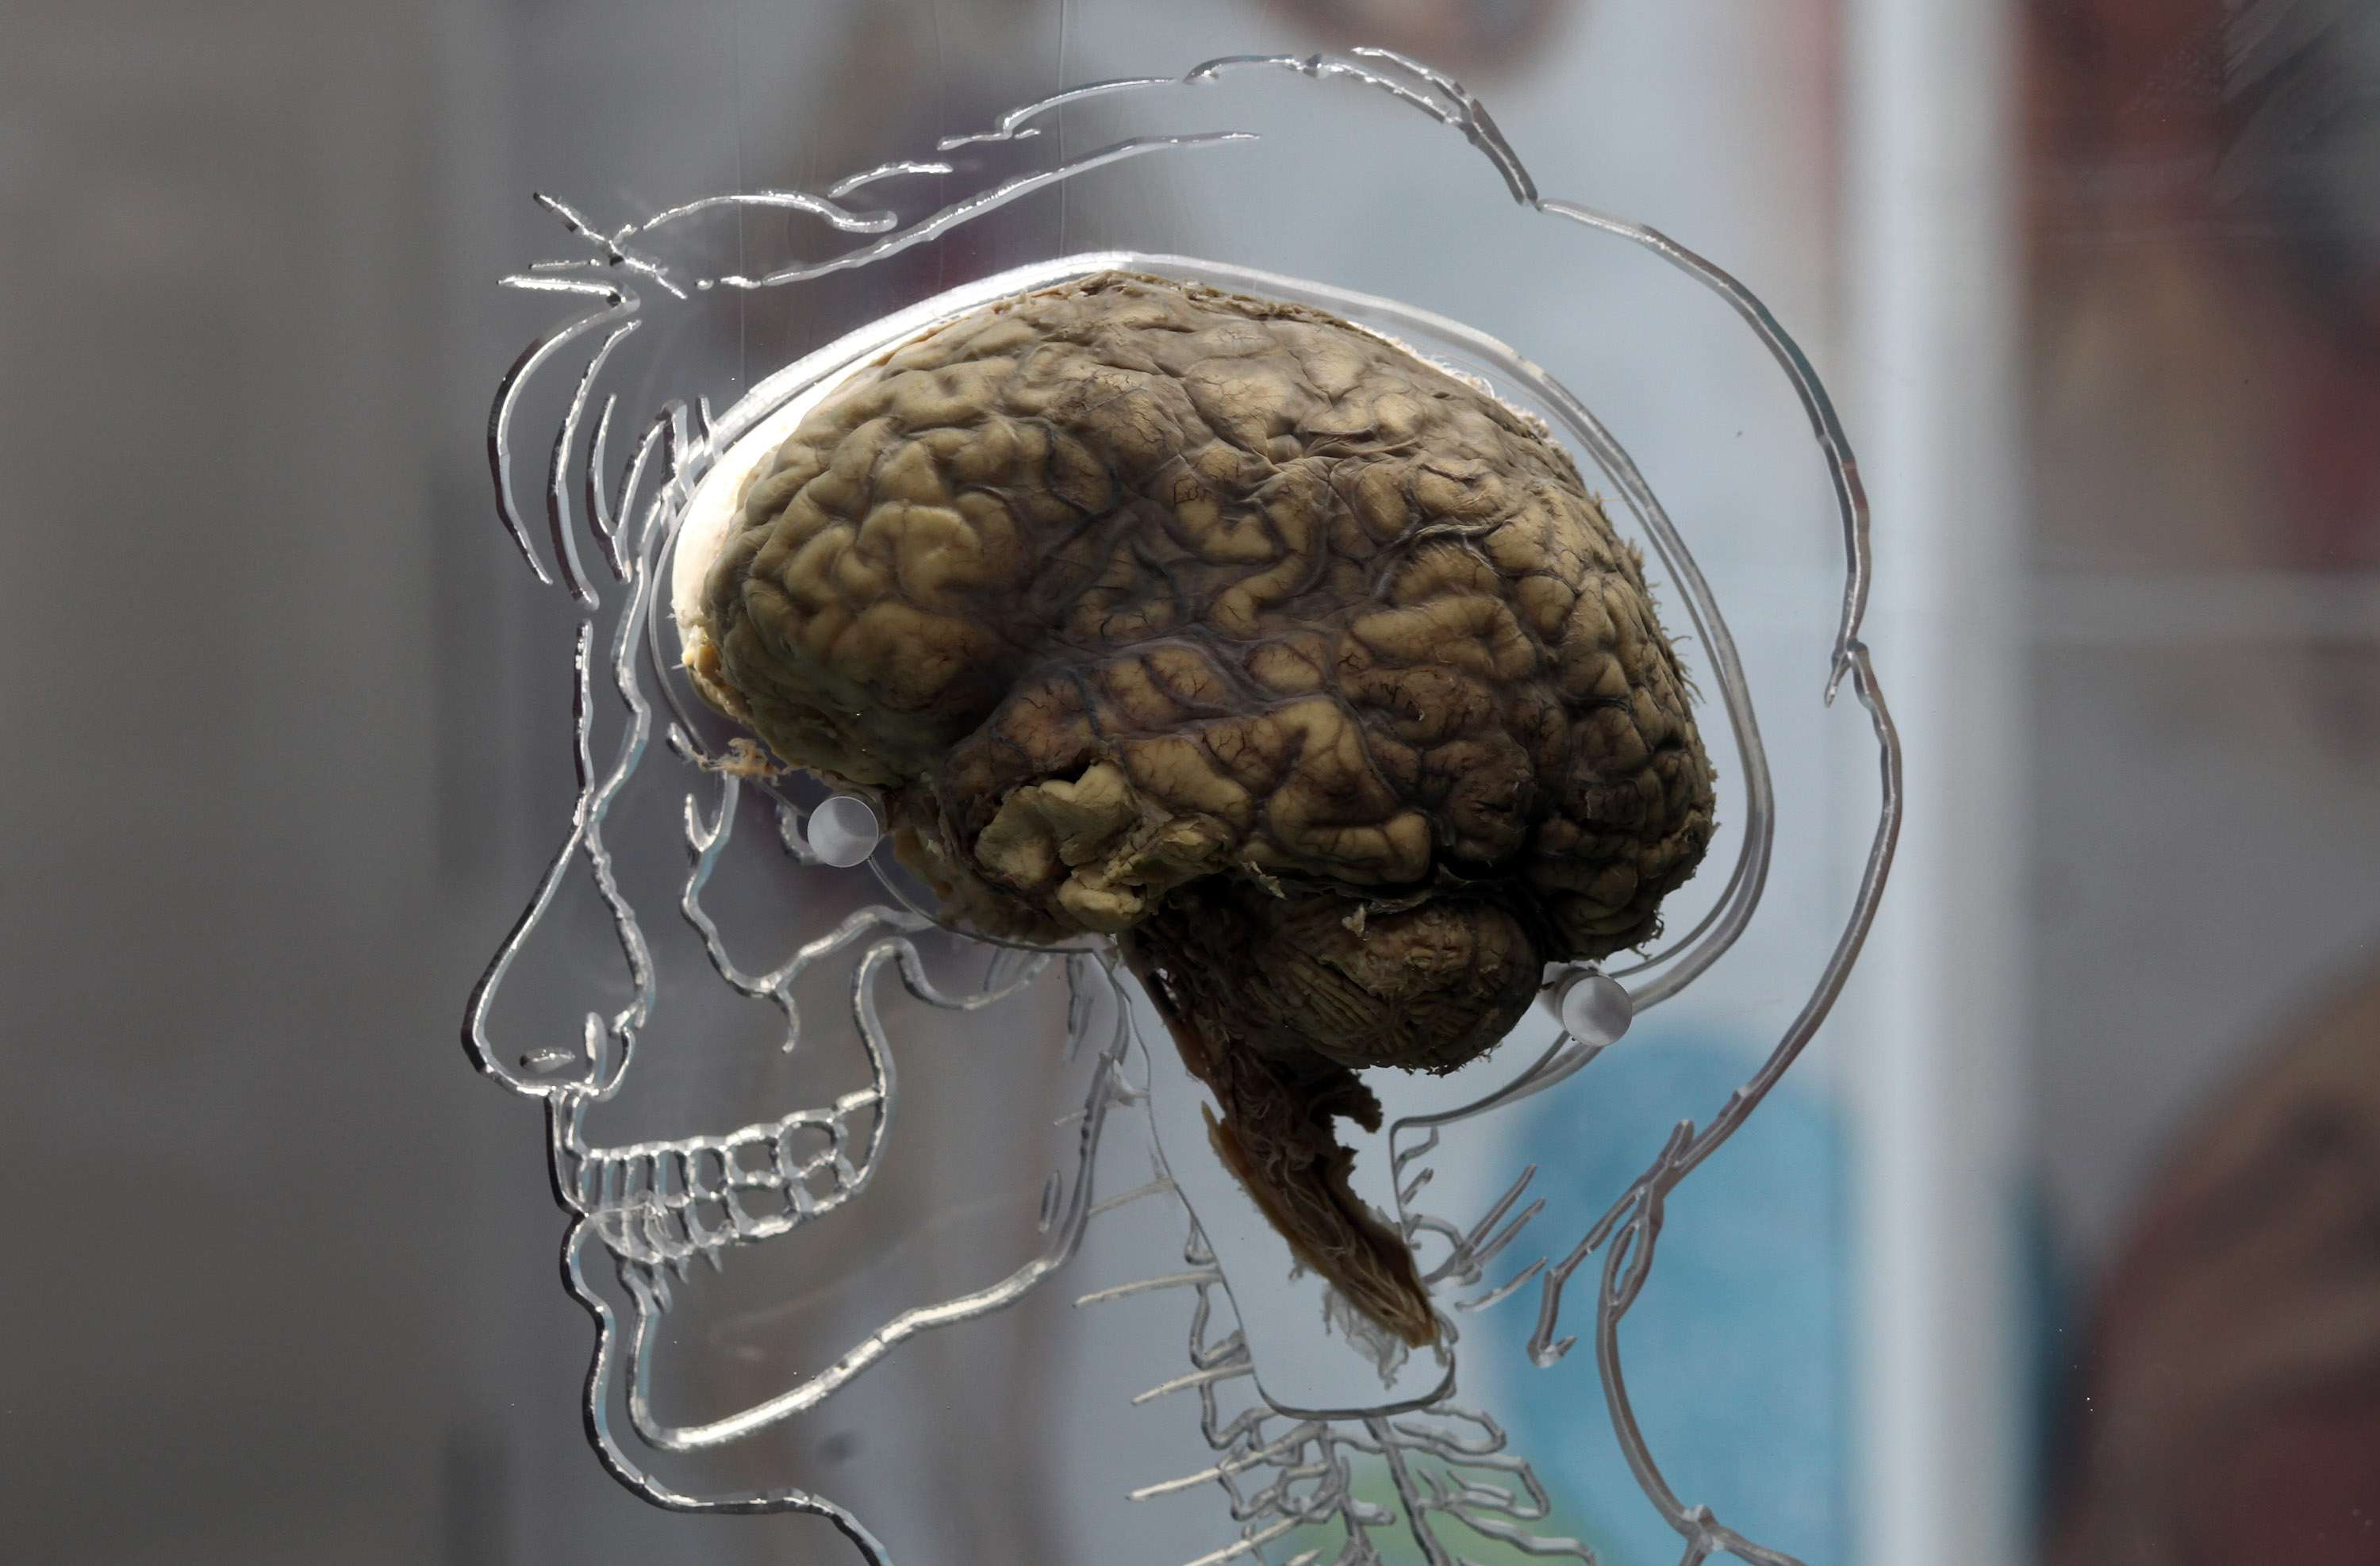 Cerebro humano. Foto: Getty Images